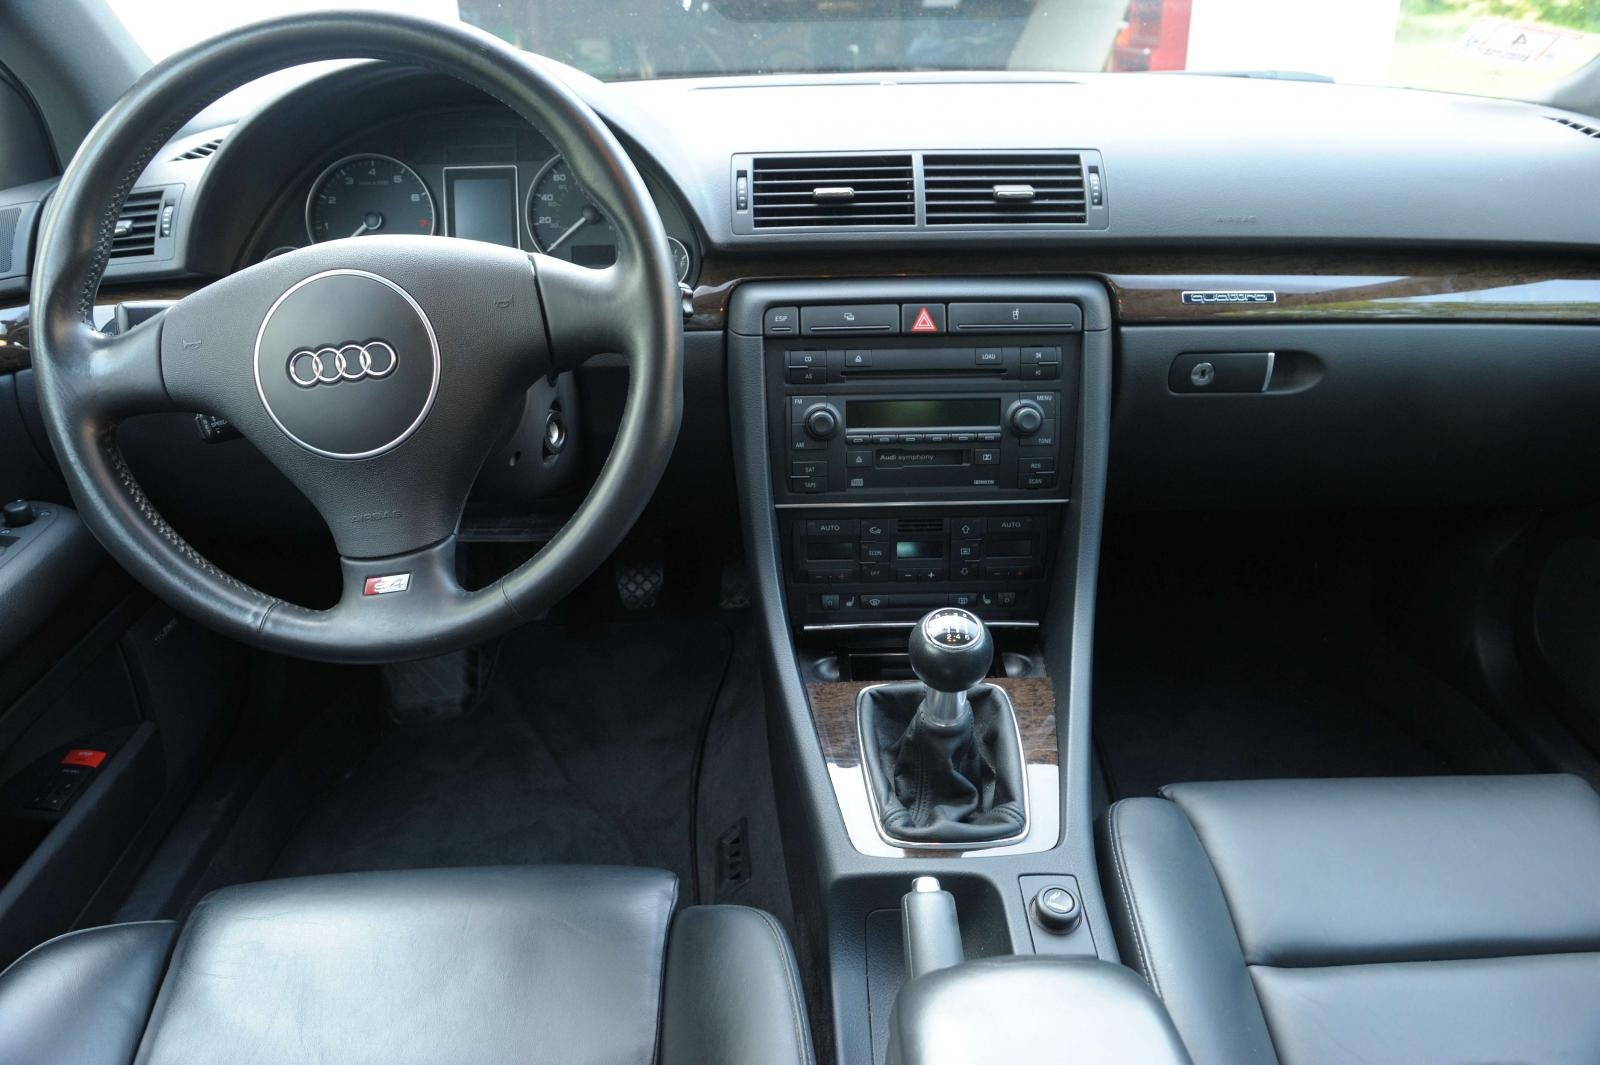 Audi S Manual User Guide Manual That Easytoread - 2004 audi s4 review